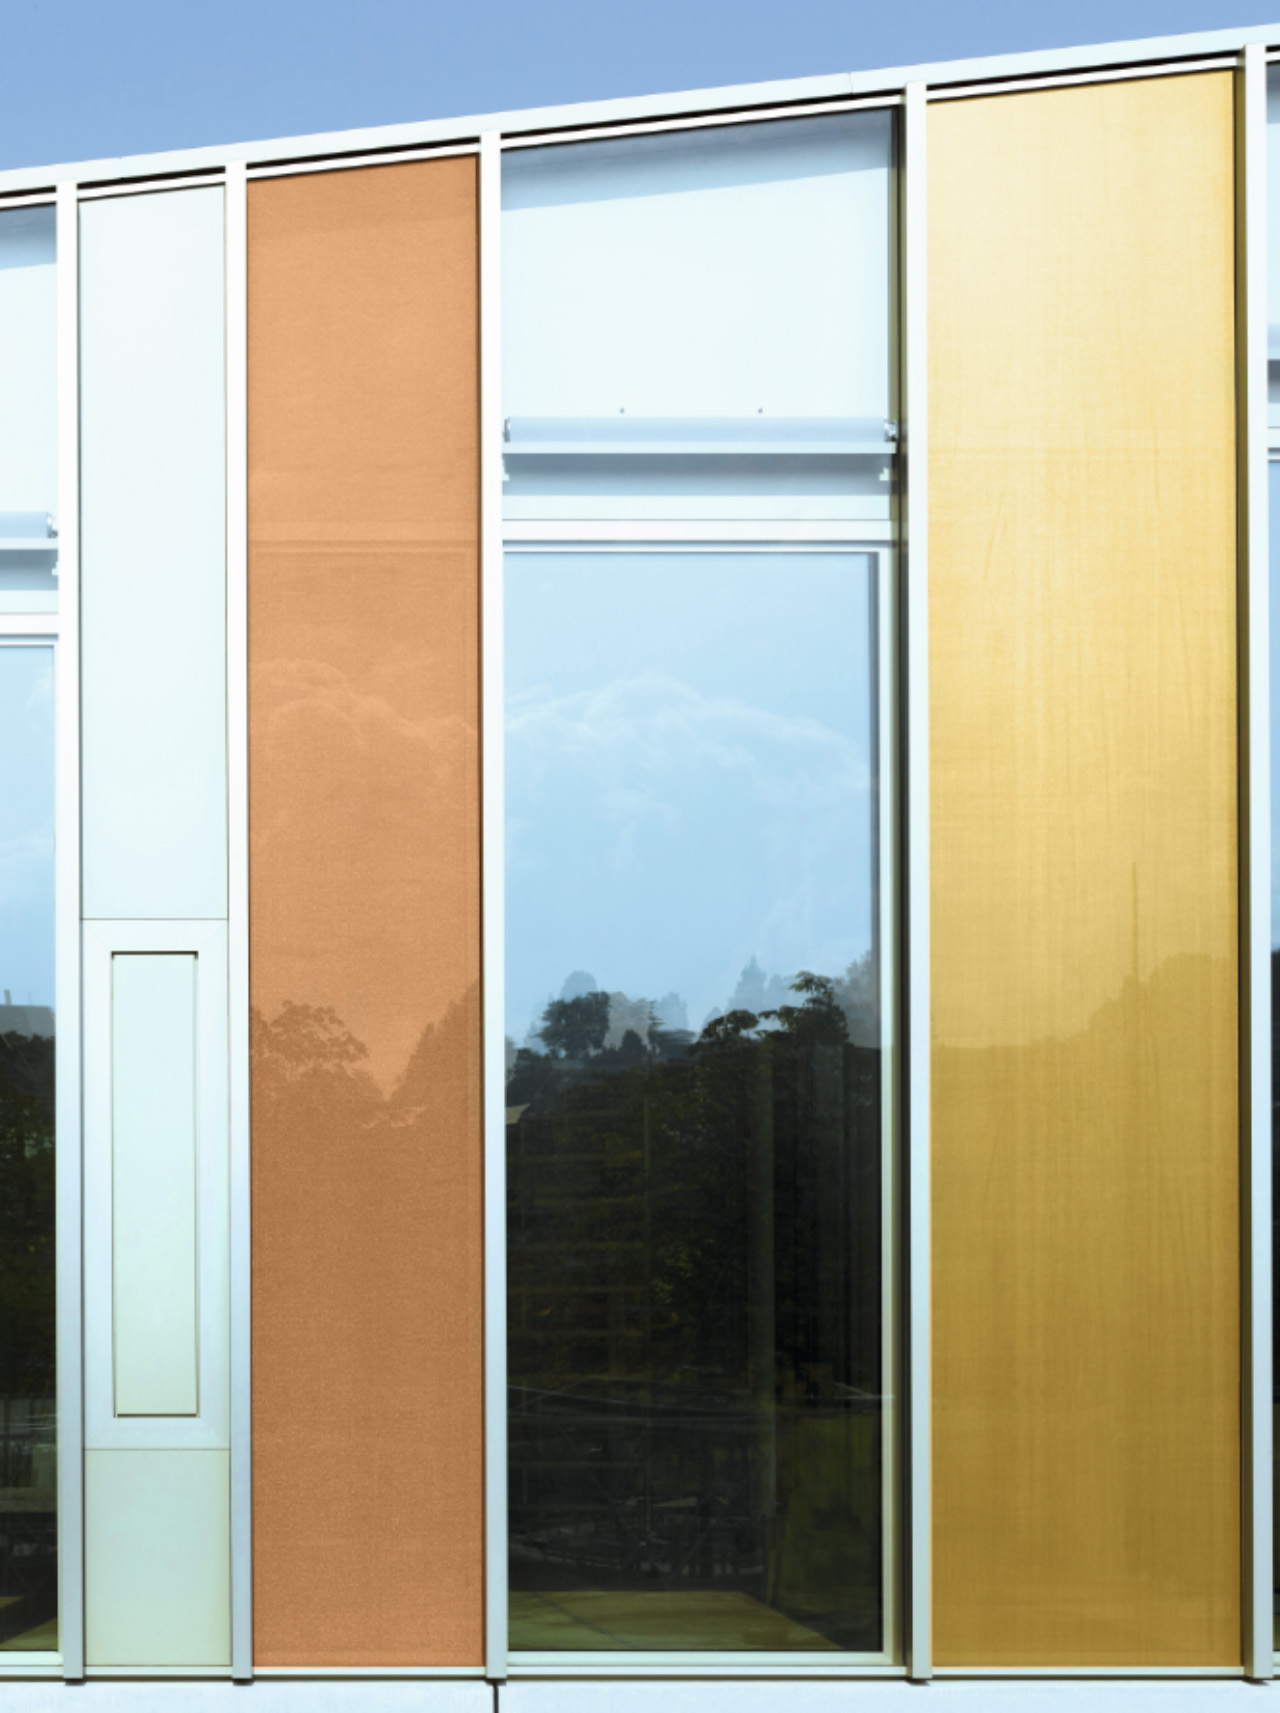 Full-height colored glass panels